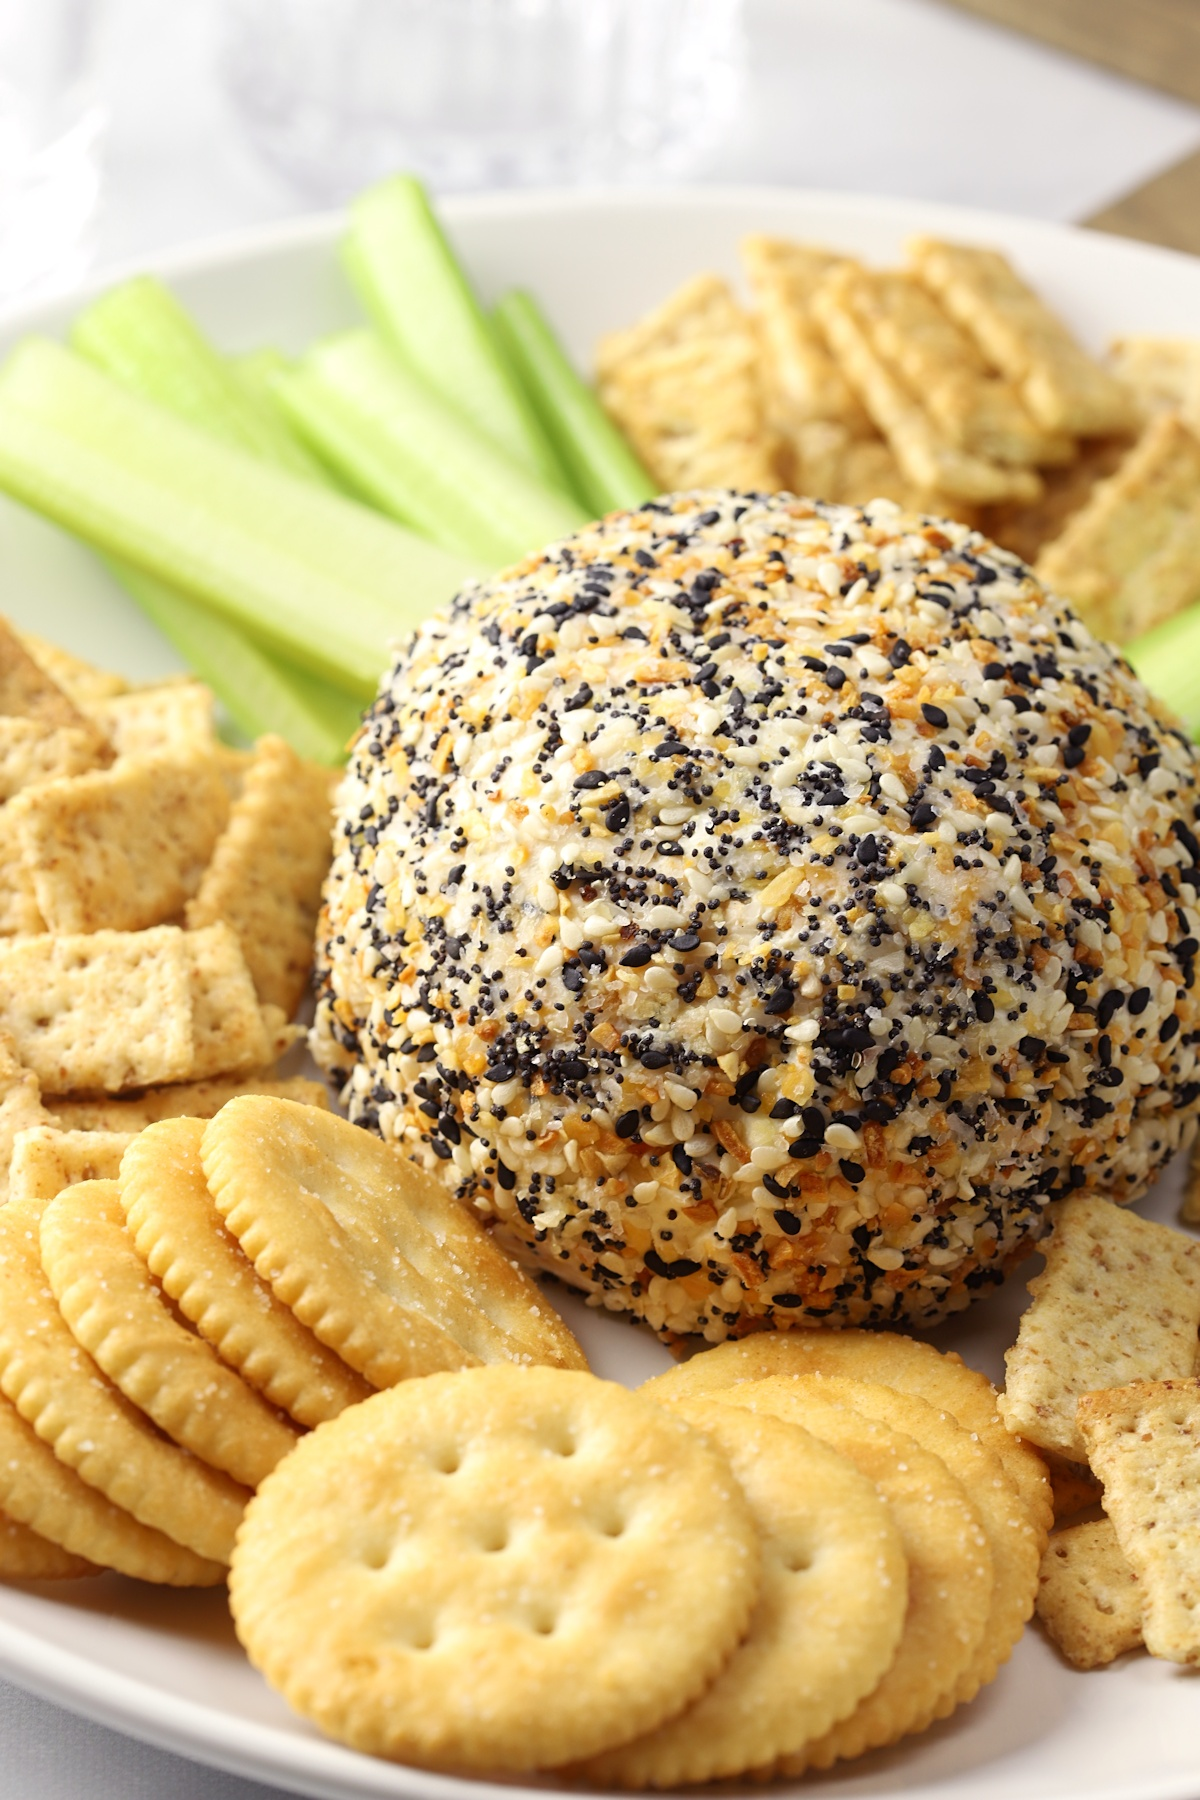 A round ball of cheese covered in everything bagel seasoning.